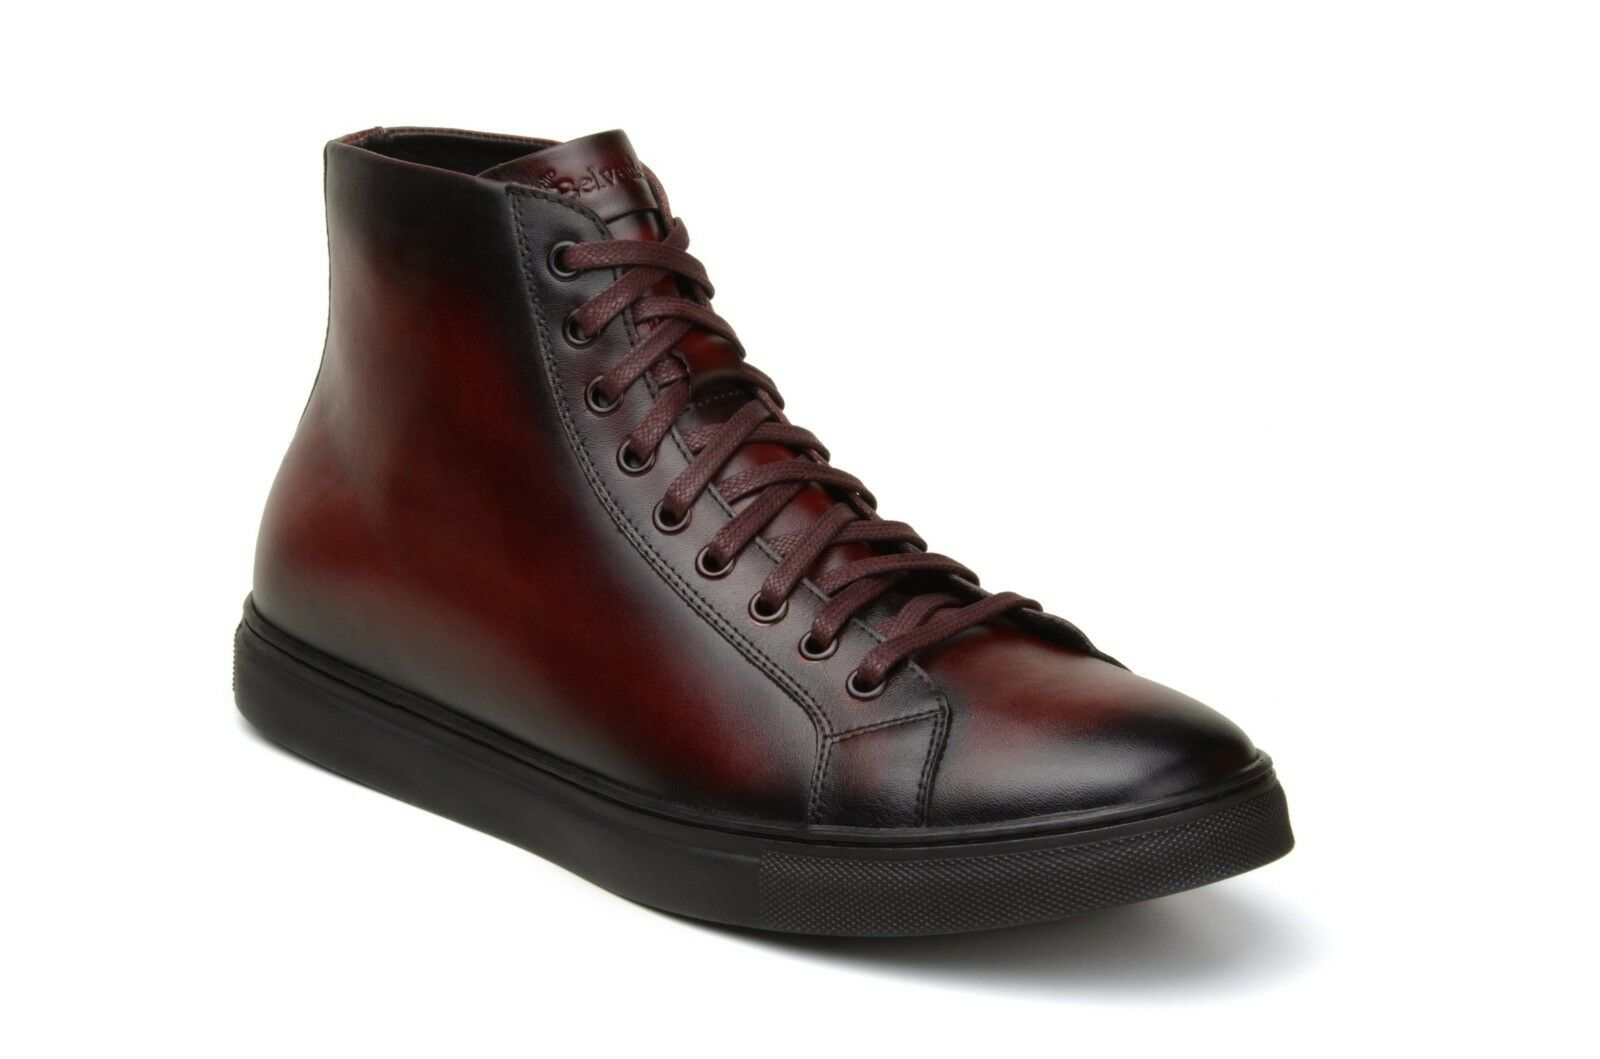 Belvedere New Exotic TurnschuheStiefel David Antique Burgundy Leather Sporty Sporty Sporty High-top 61dae8